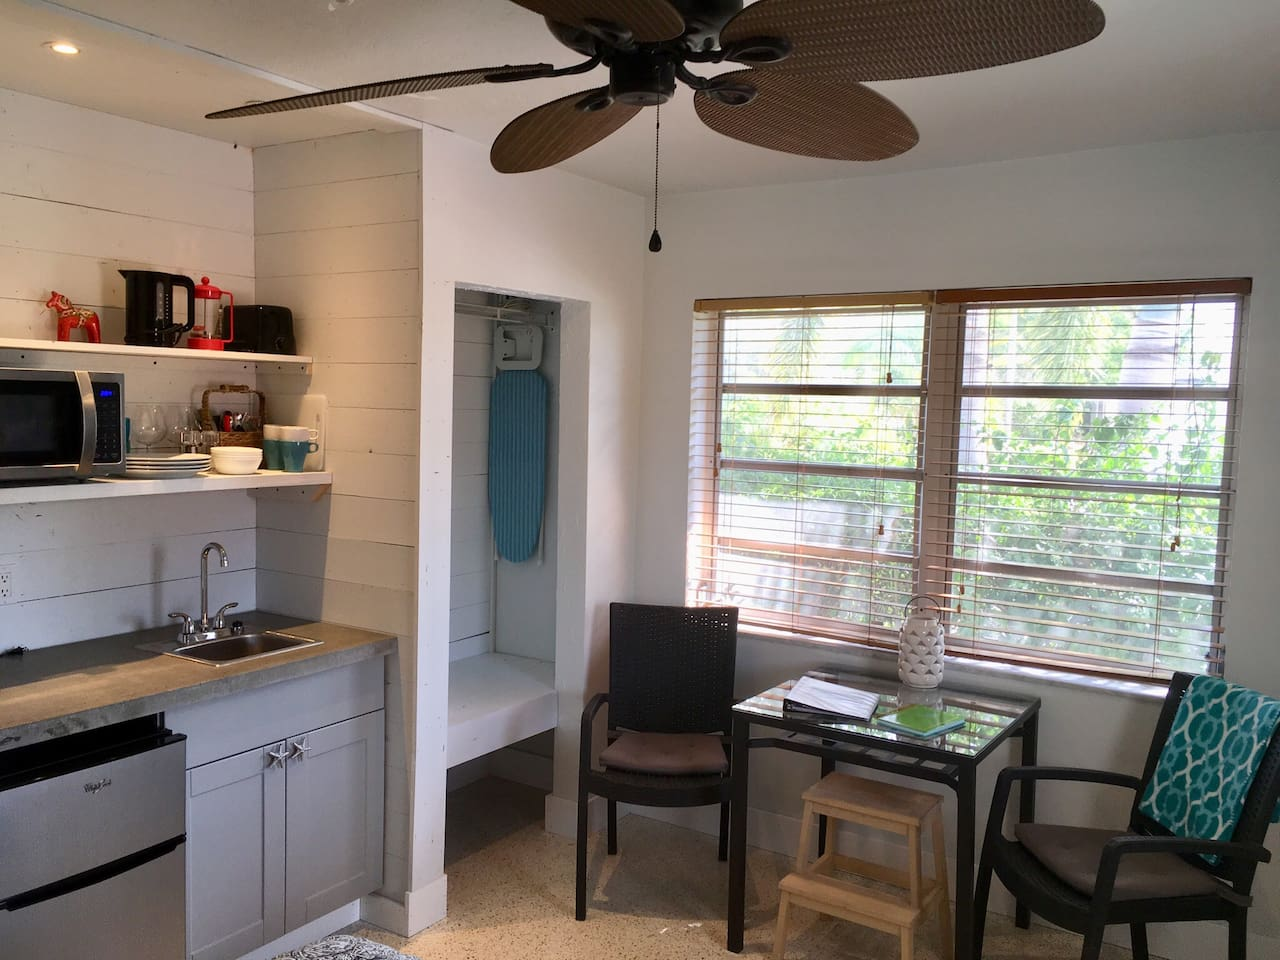 Private Studio with kitchenette and full bath